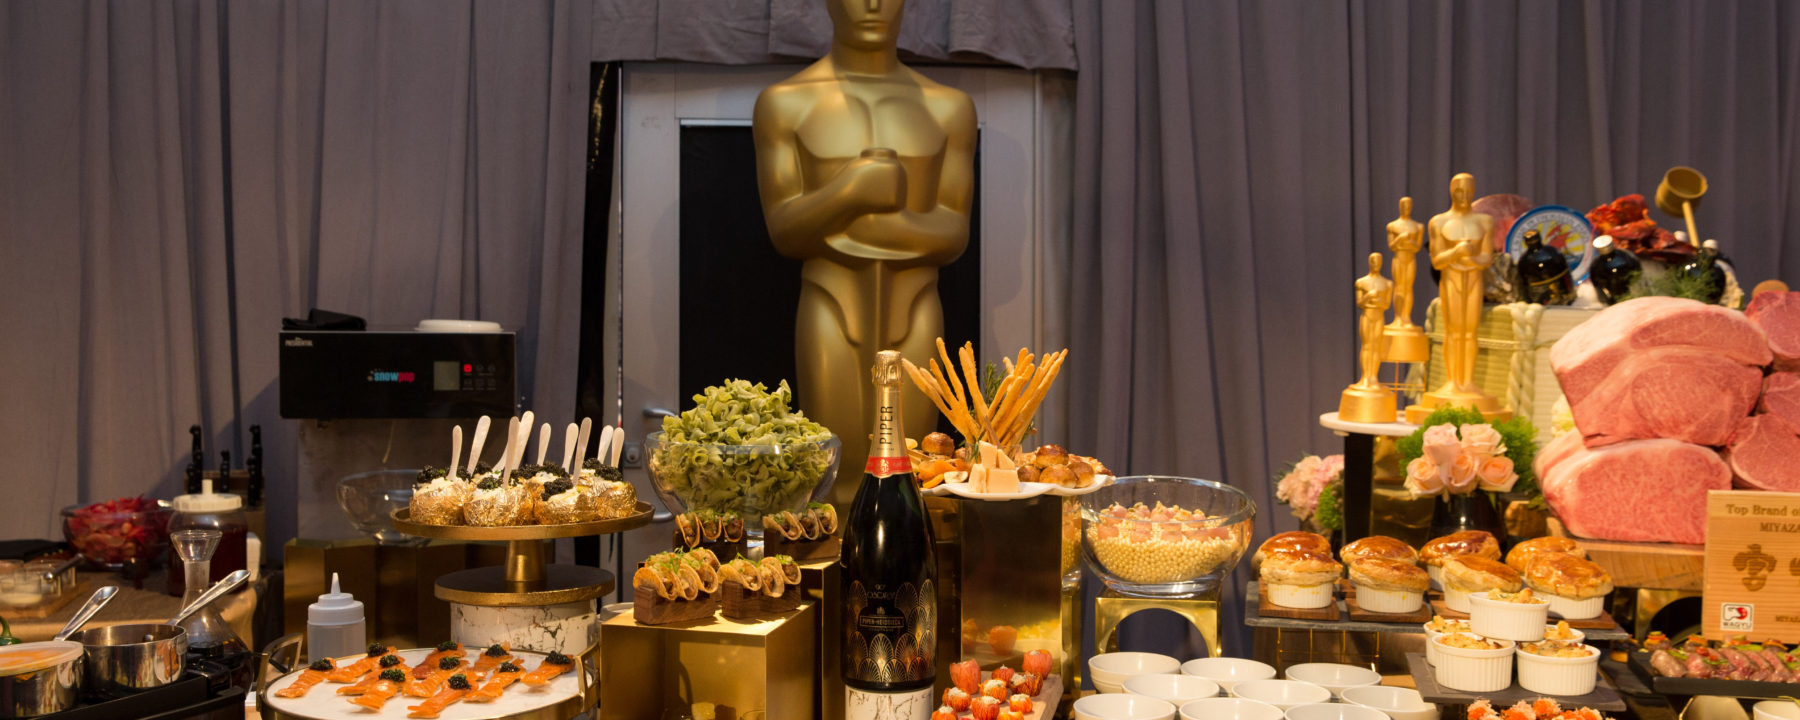 90th Oscars®, Governors Ball Preview 4Chion Lifestyle